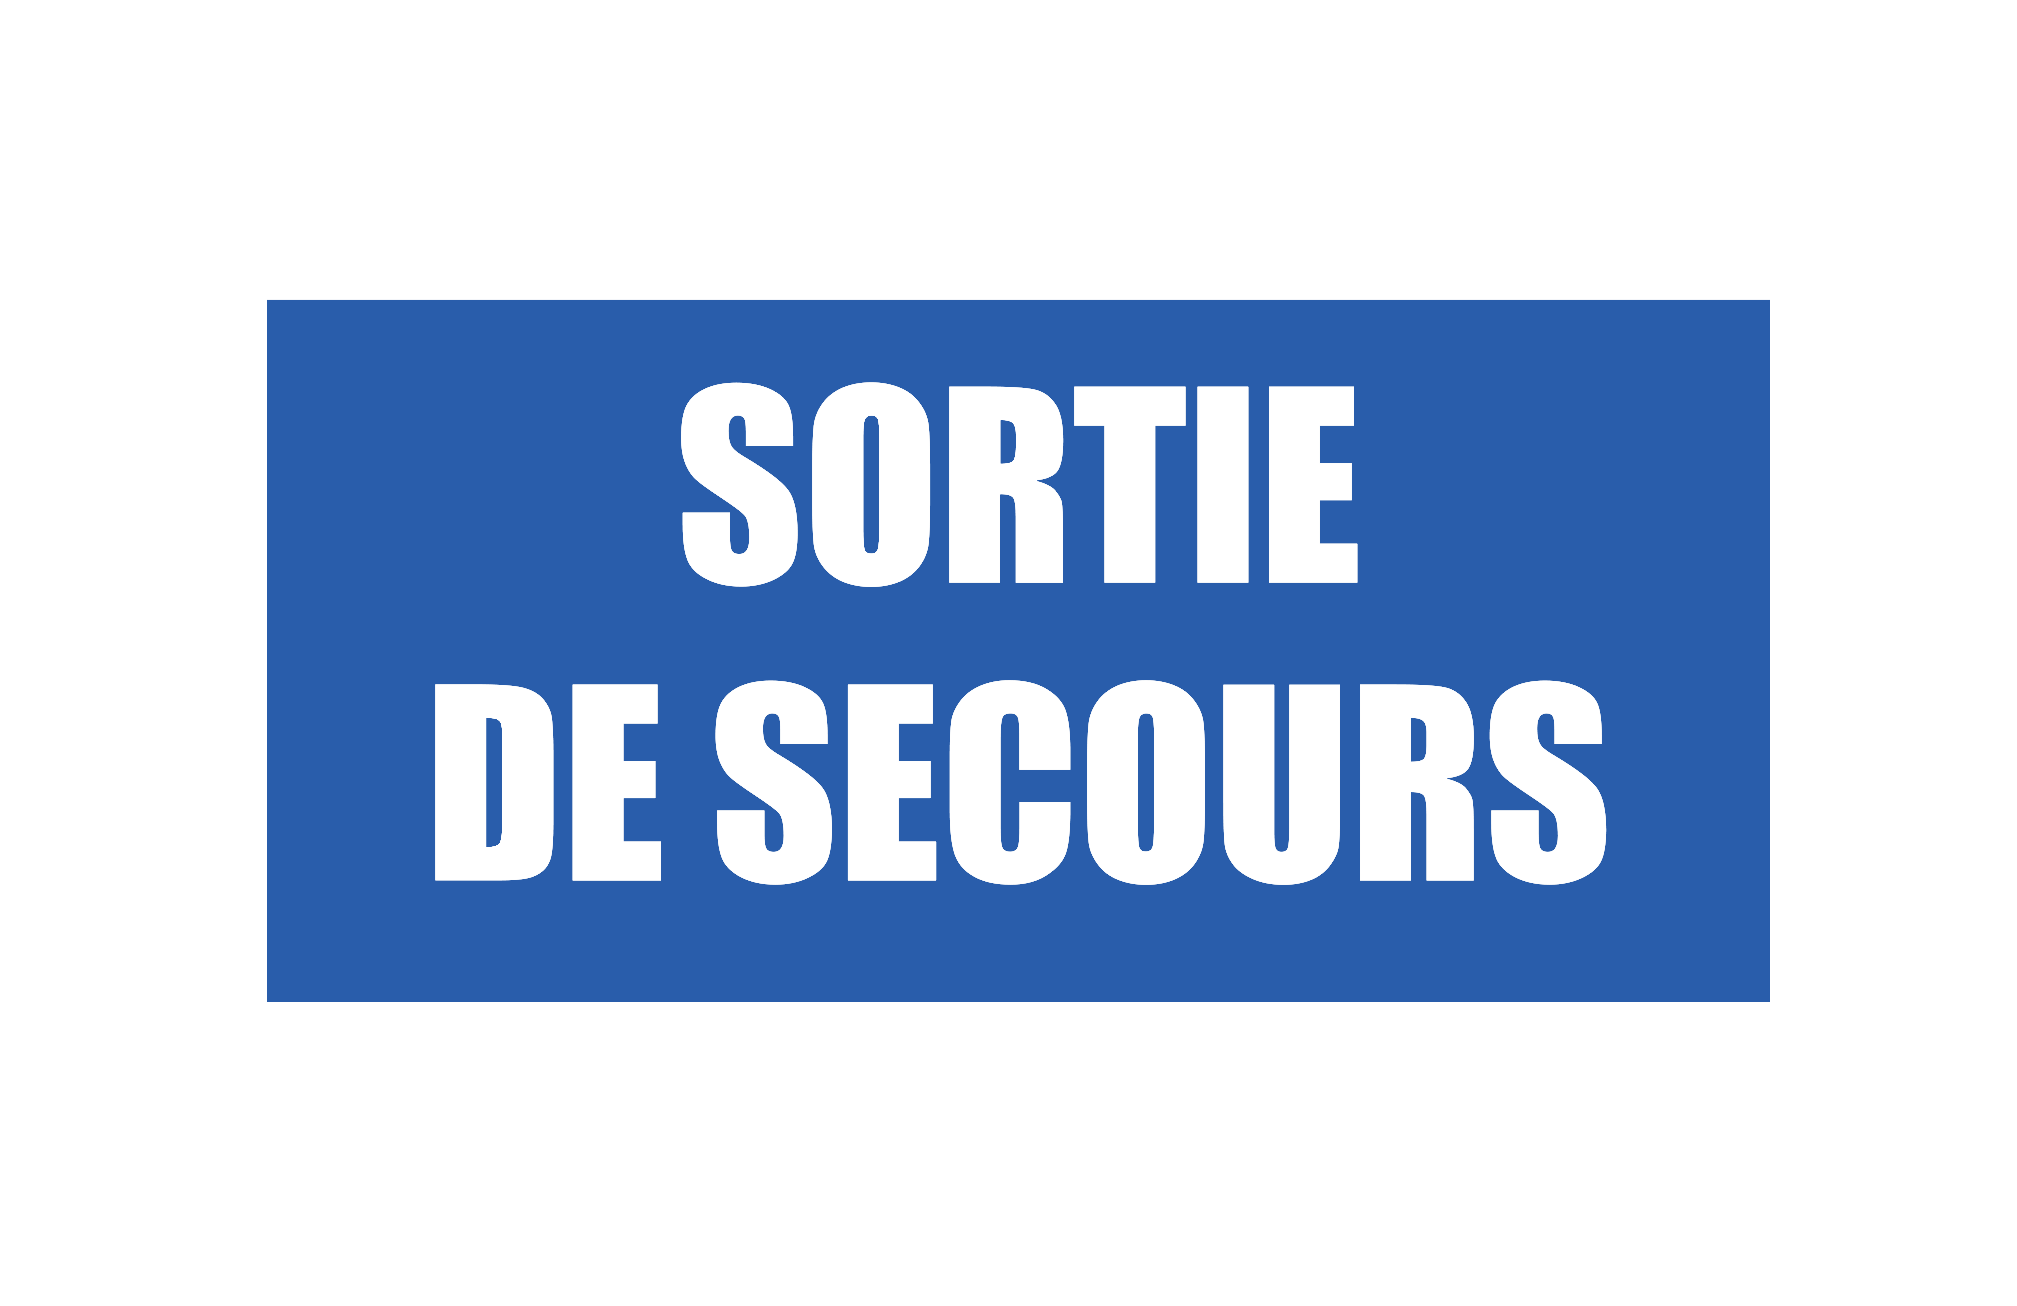 sortiedesecours 2 - Accueil